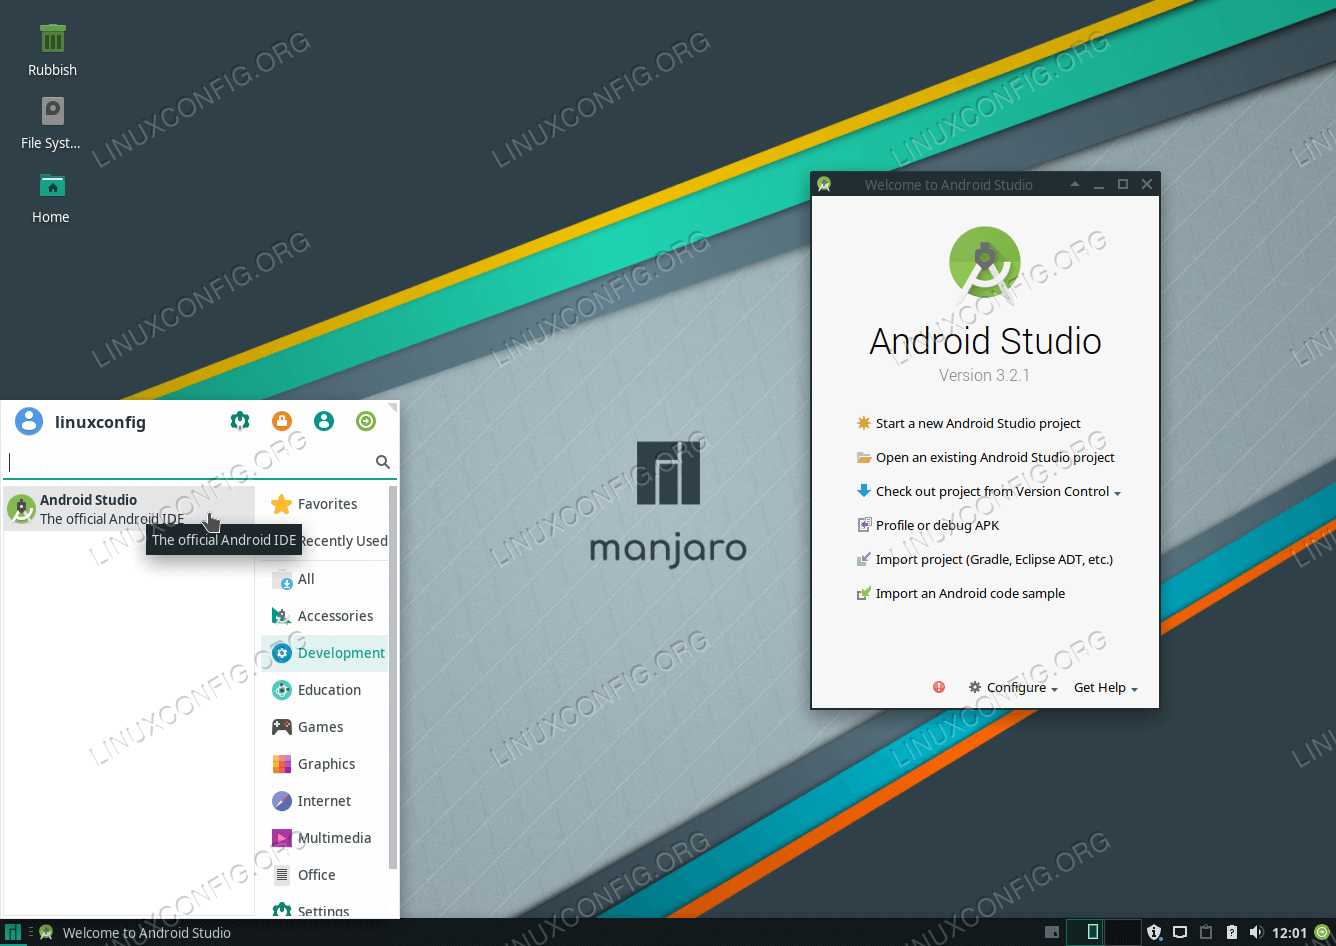 Successful Android Studio installation on Manjaro 18 Linux